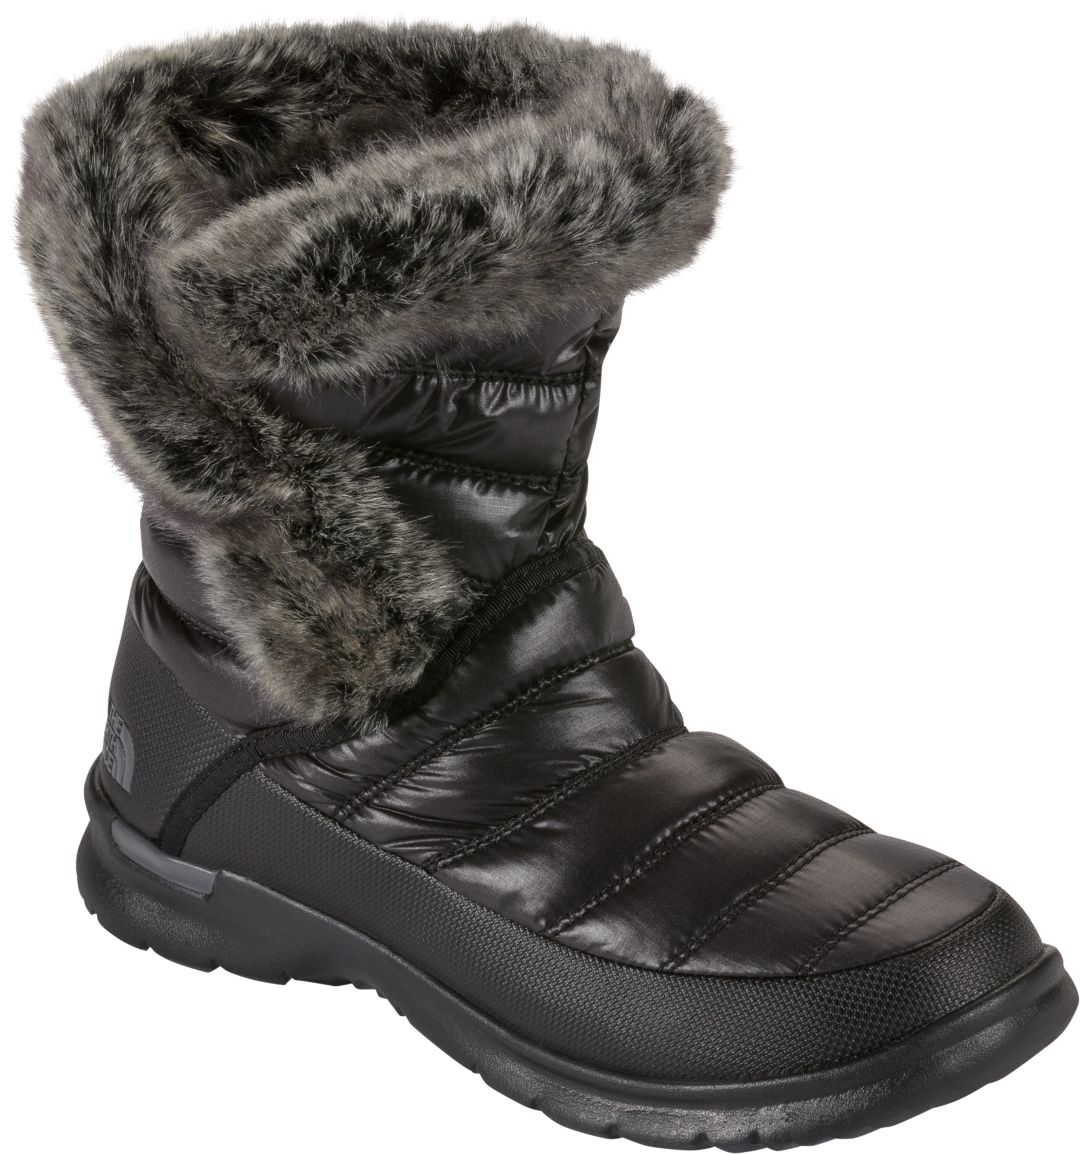 3389501d3 The North Face Women's Thermoball Microbaffle Bootsie III Insulated Winter  Boots